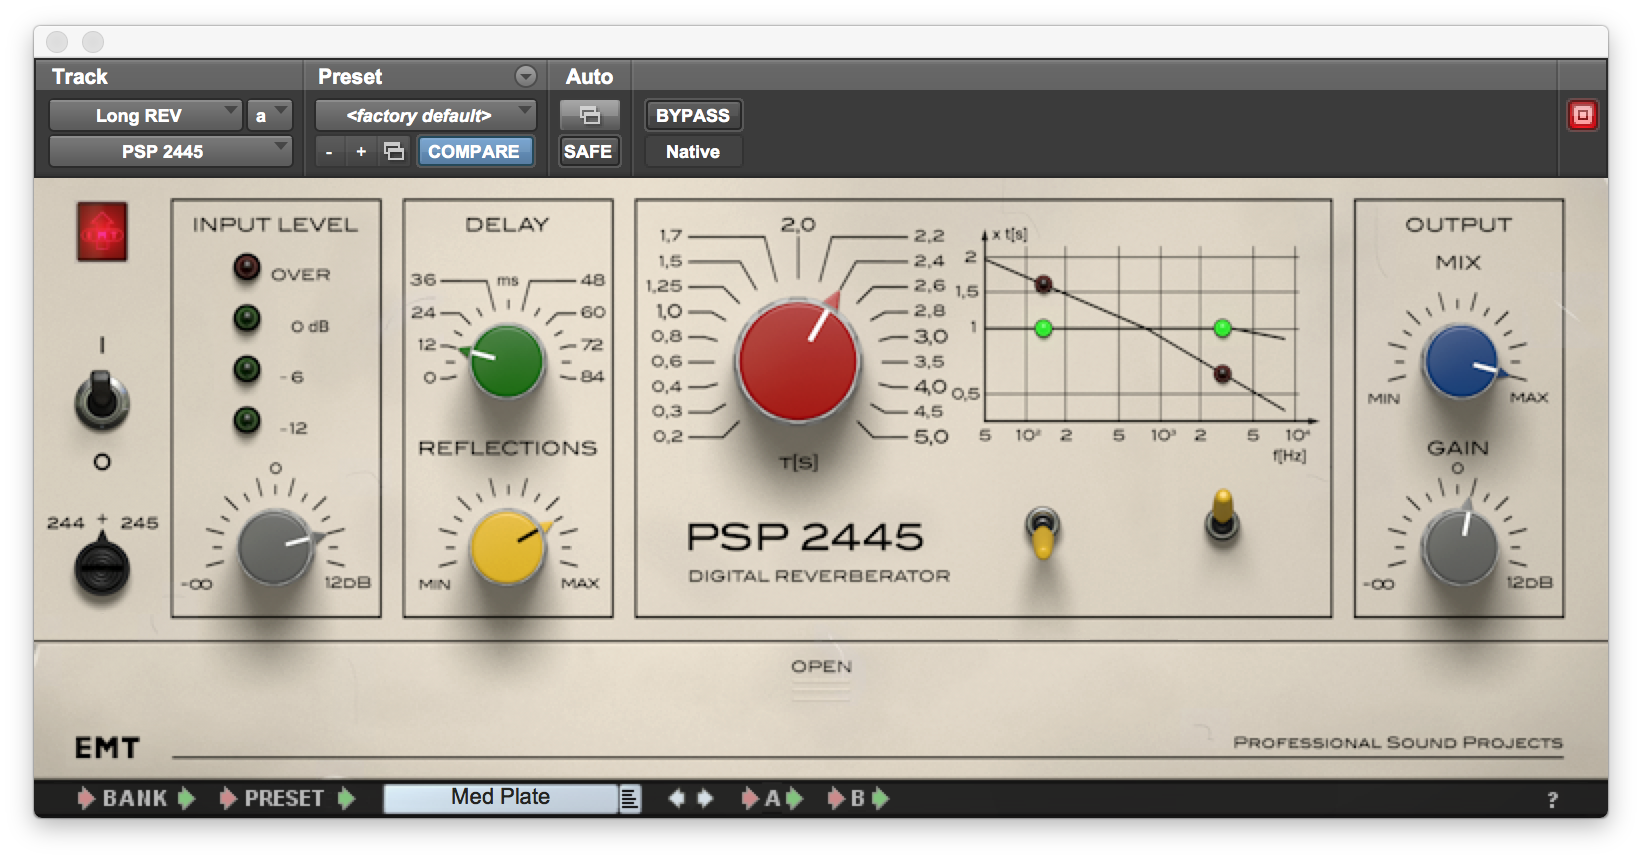 The PSP 2445 emulates the sound of two different EMT outboard reverb units